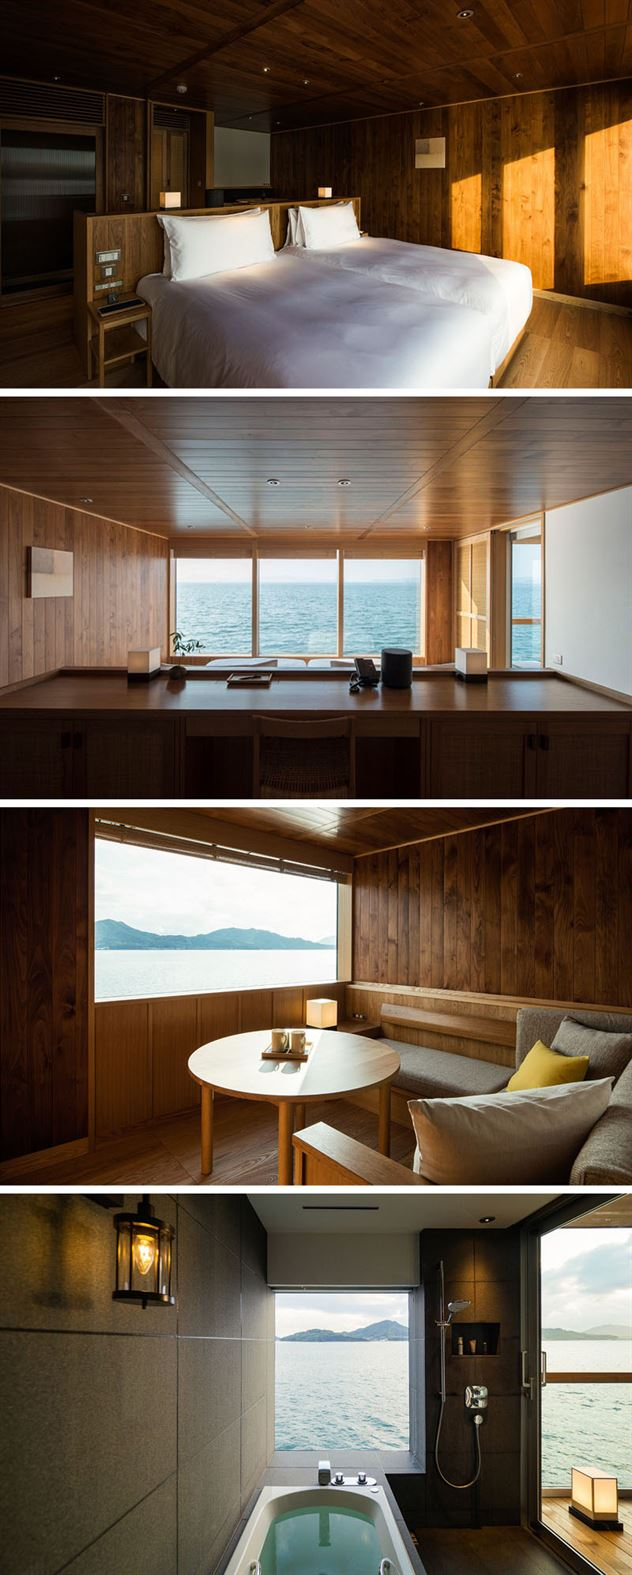 guntu-floating-hotel-architecture-interior-design-07